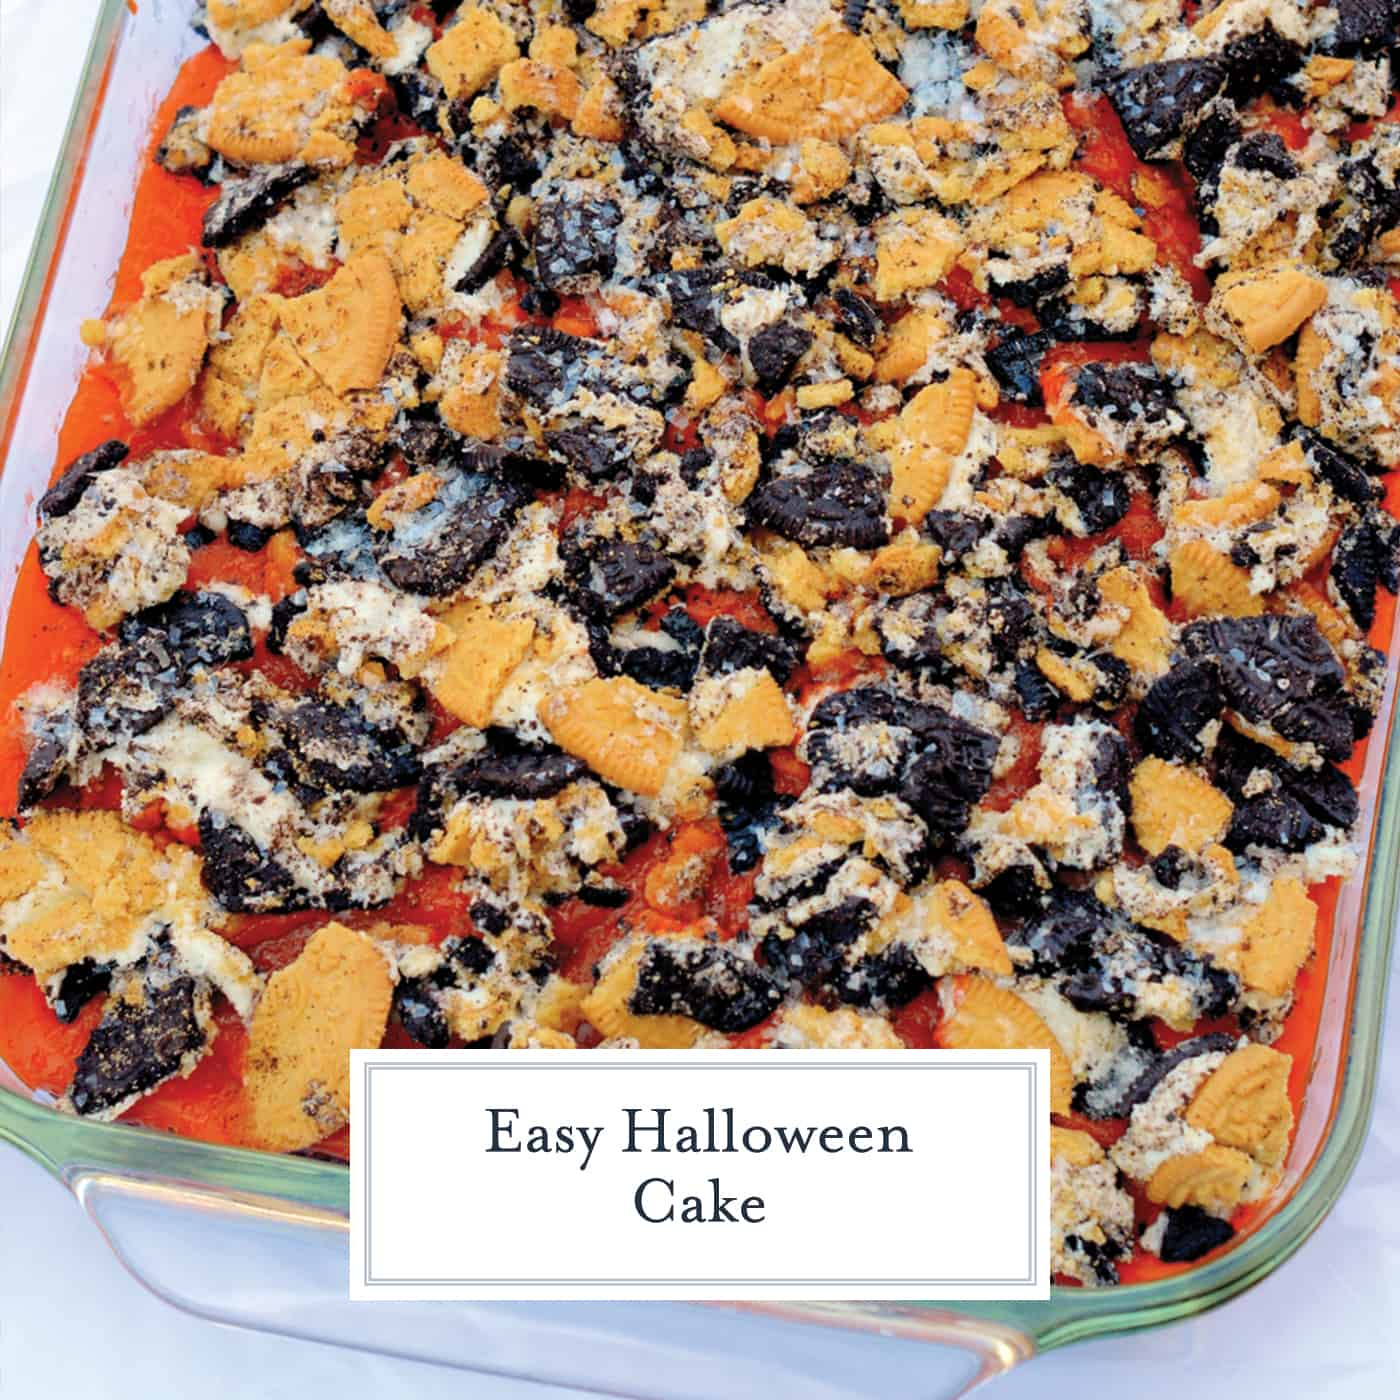 Easy Halloween Cake is a pudding poke cake made with cake mix, chocolate pudding and Halloween colored Oreo cookies. An easy and delicious Halloween dessert! #halloweendesserts #halloweencake #pokecake www.savoryexperiments.com